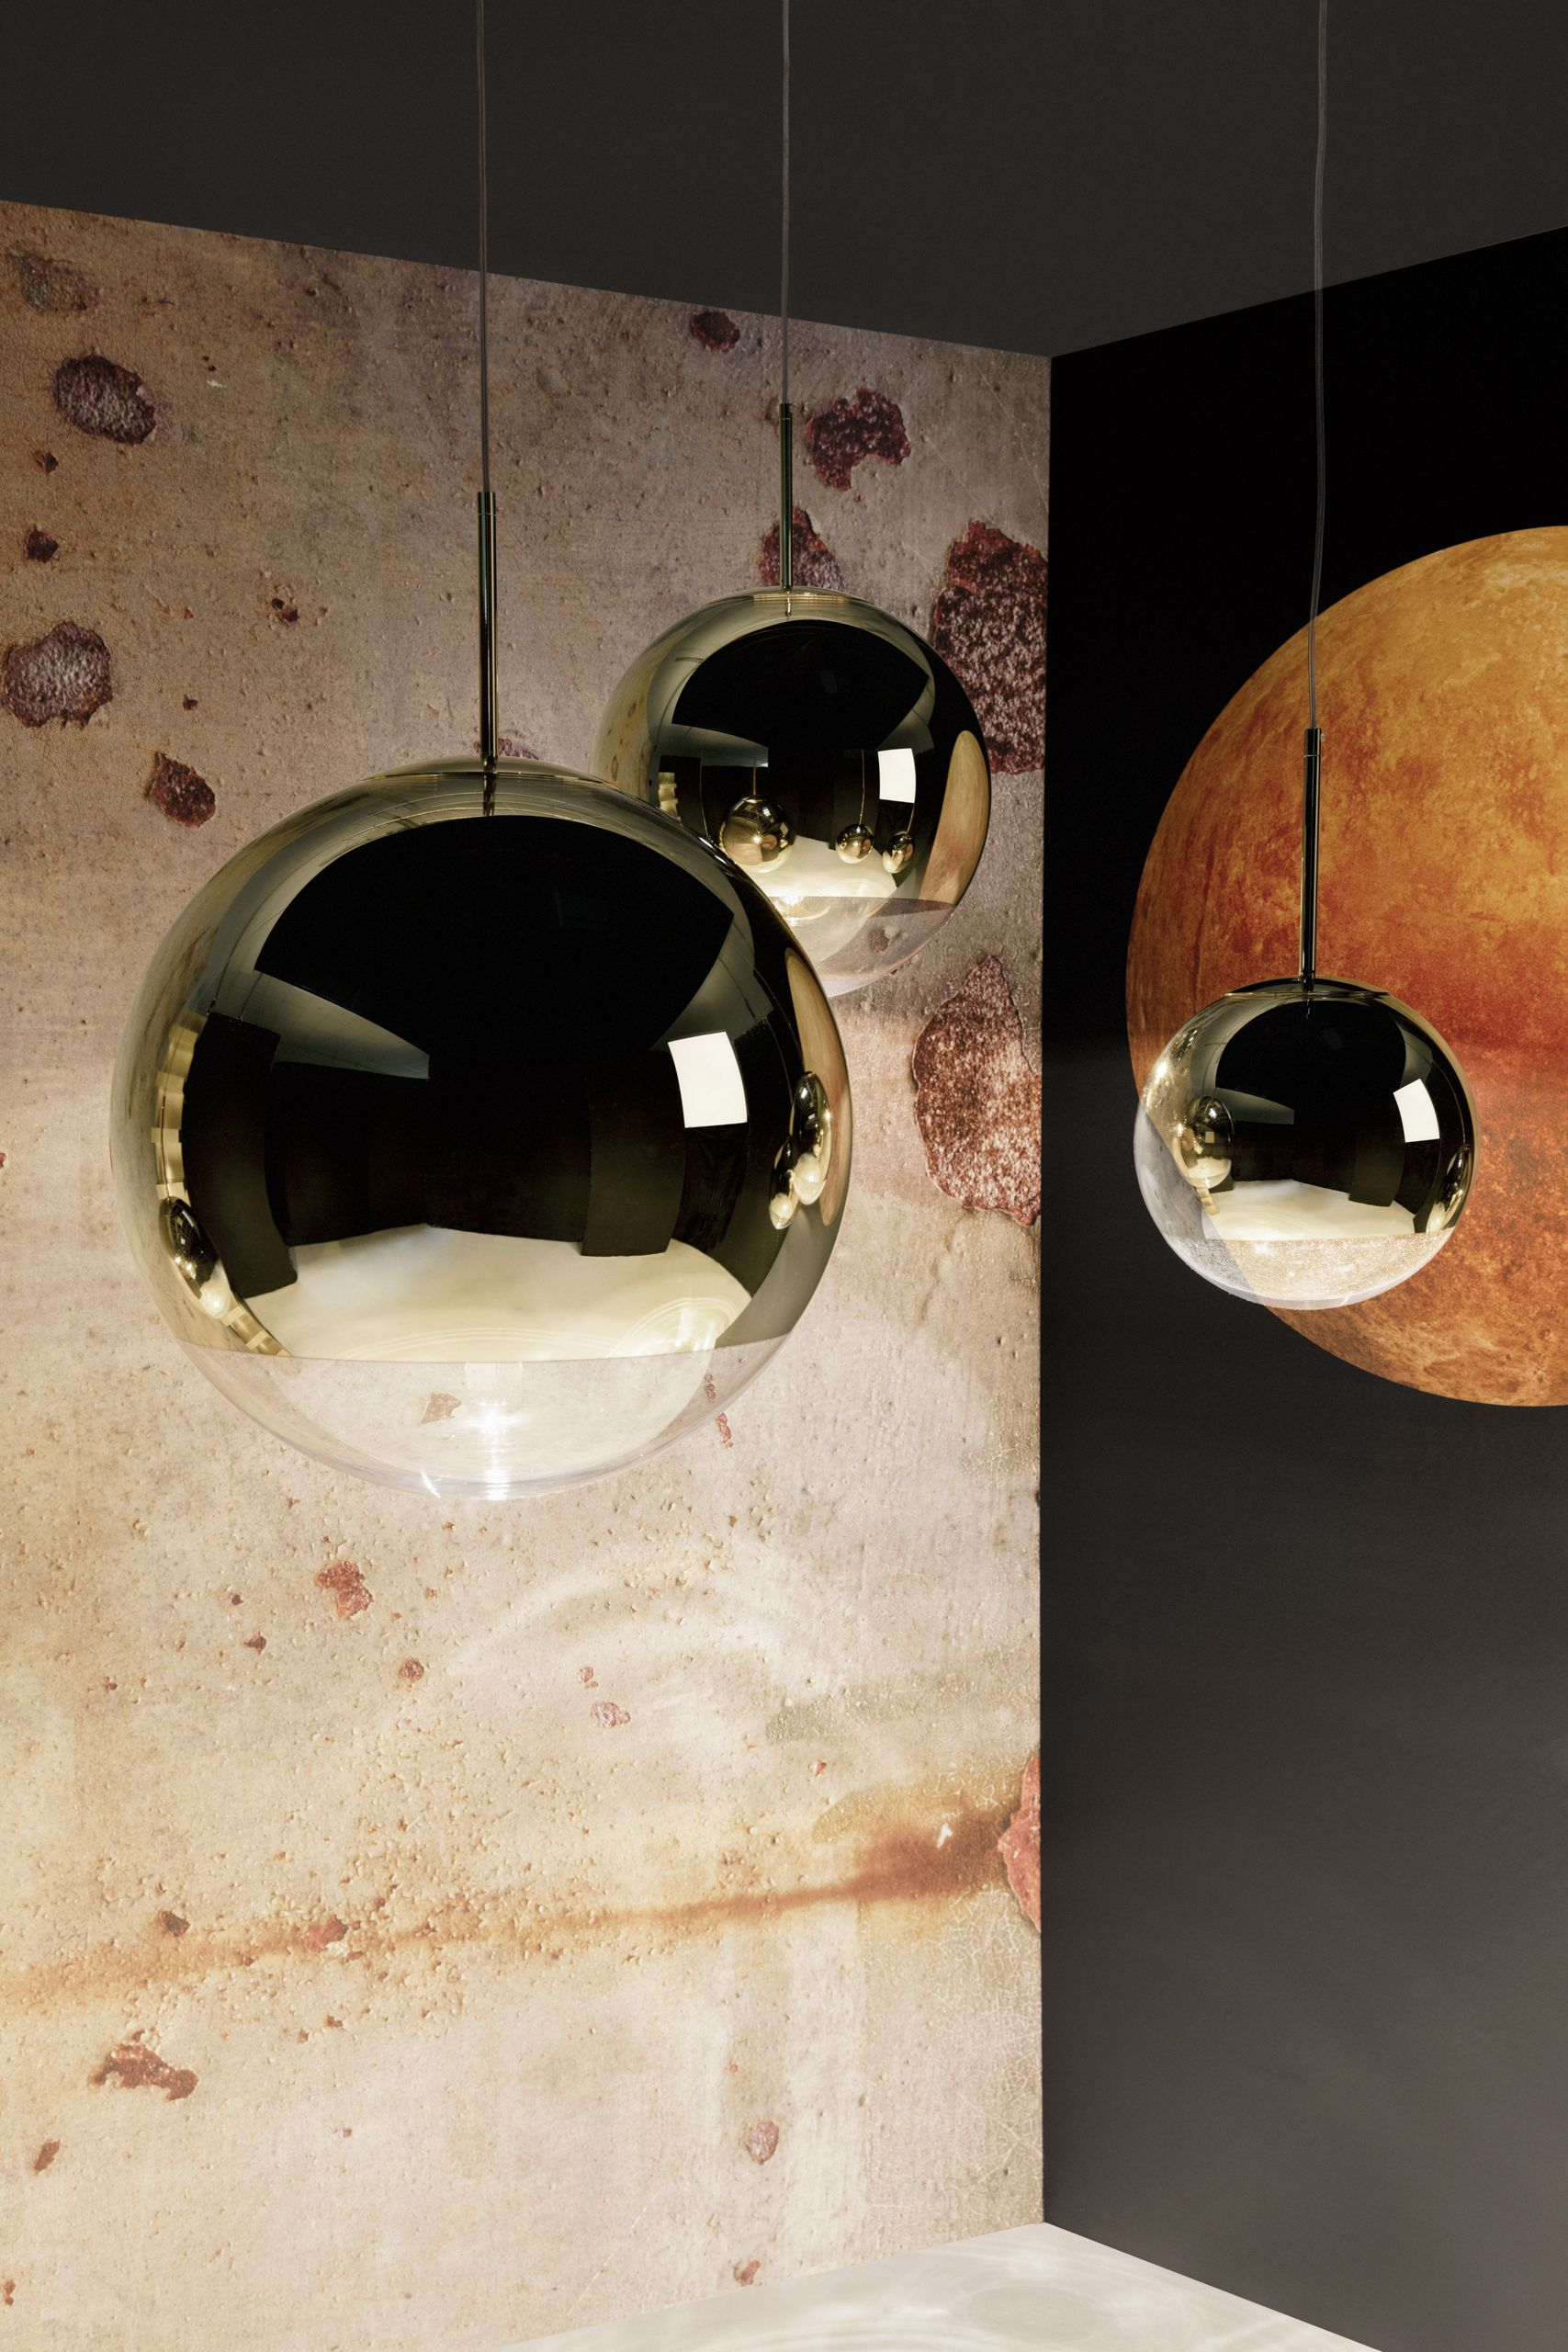 Mirror Ball Gold 15 Off All Tom Dixon Lighting Furniture And Accessories Now Thru October 15th Shop Ball Pendant Lighting Wall Lighting Design Mirror Ball